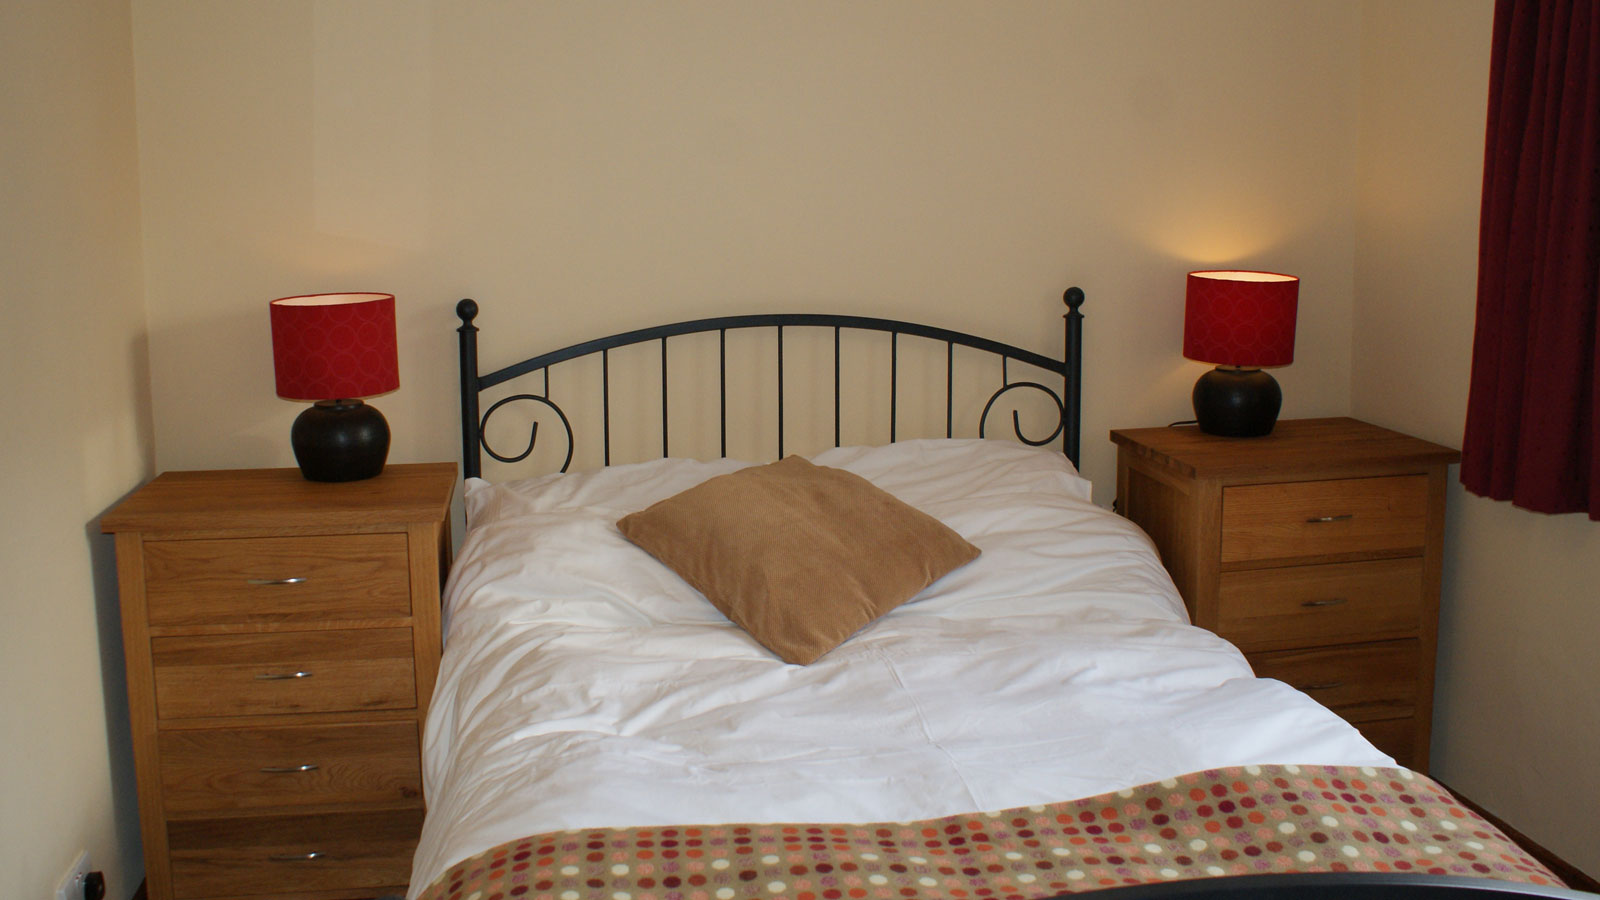 Double bed in Mincorn Holiday Cottage with local Melyn Ty Gwynt throw